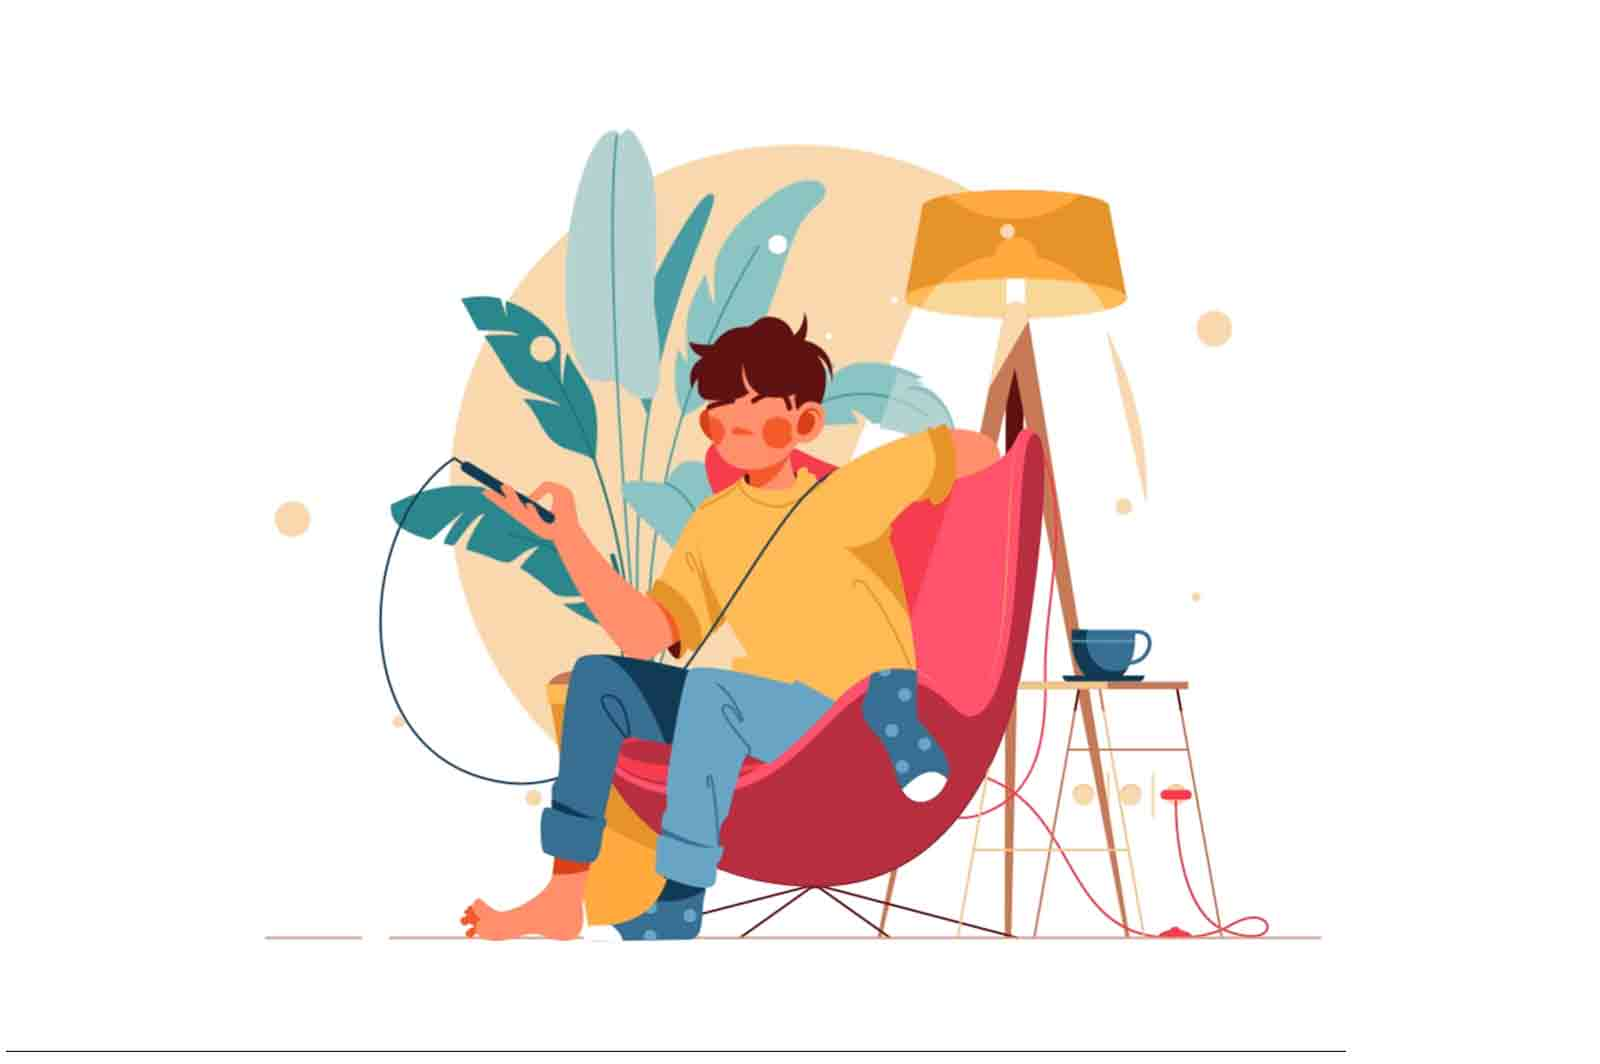 Man sit in chair with smartphone. Lottie, After effects animation.